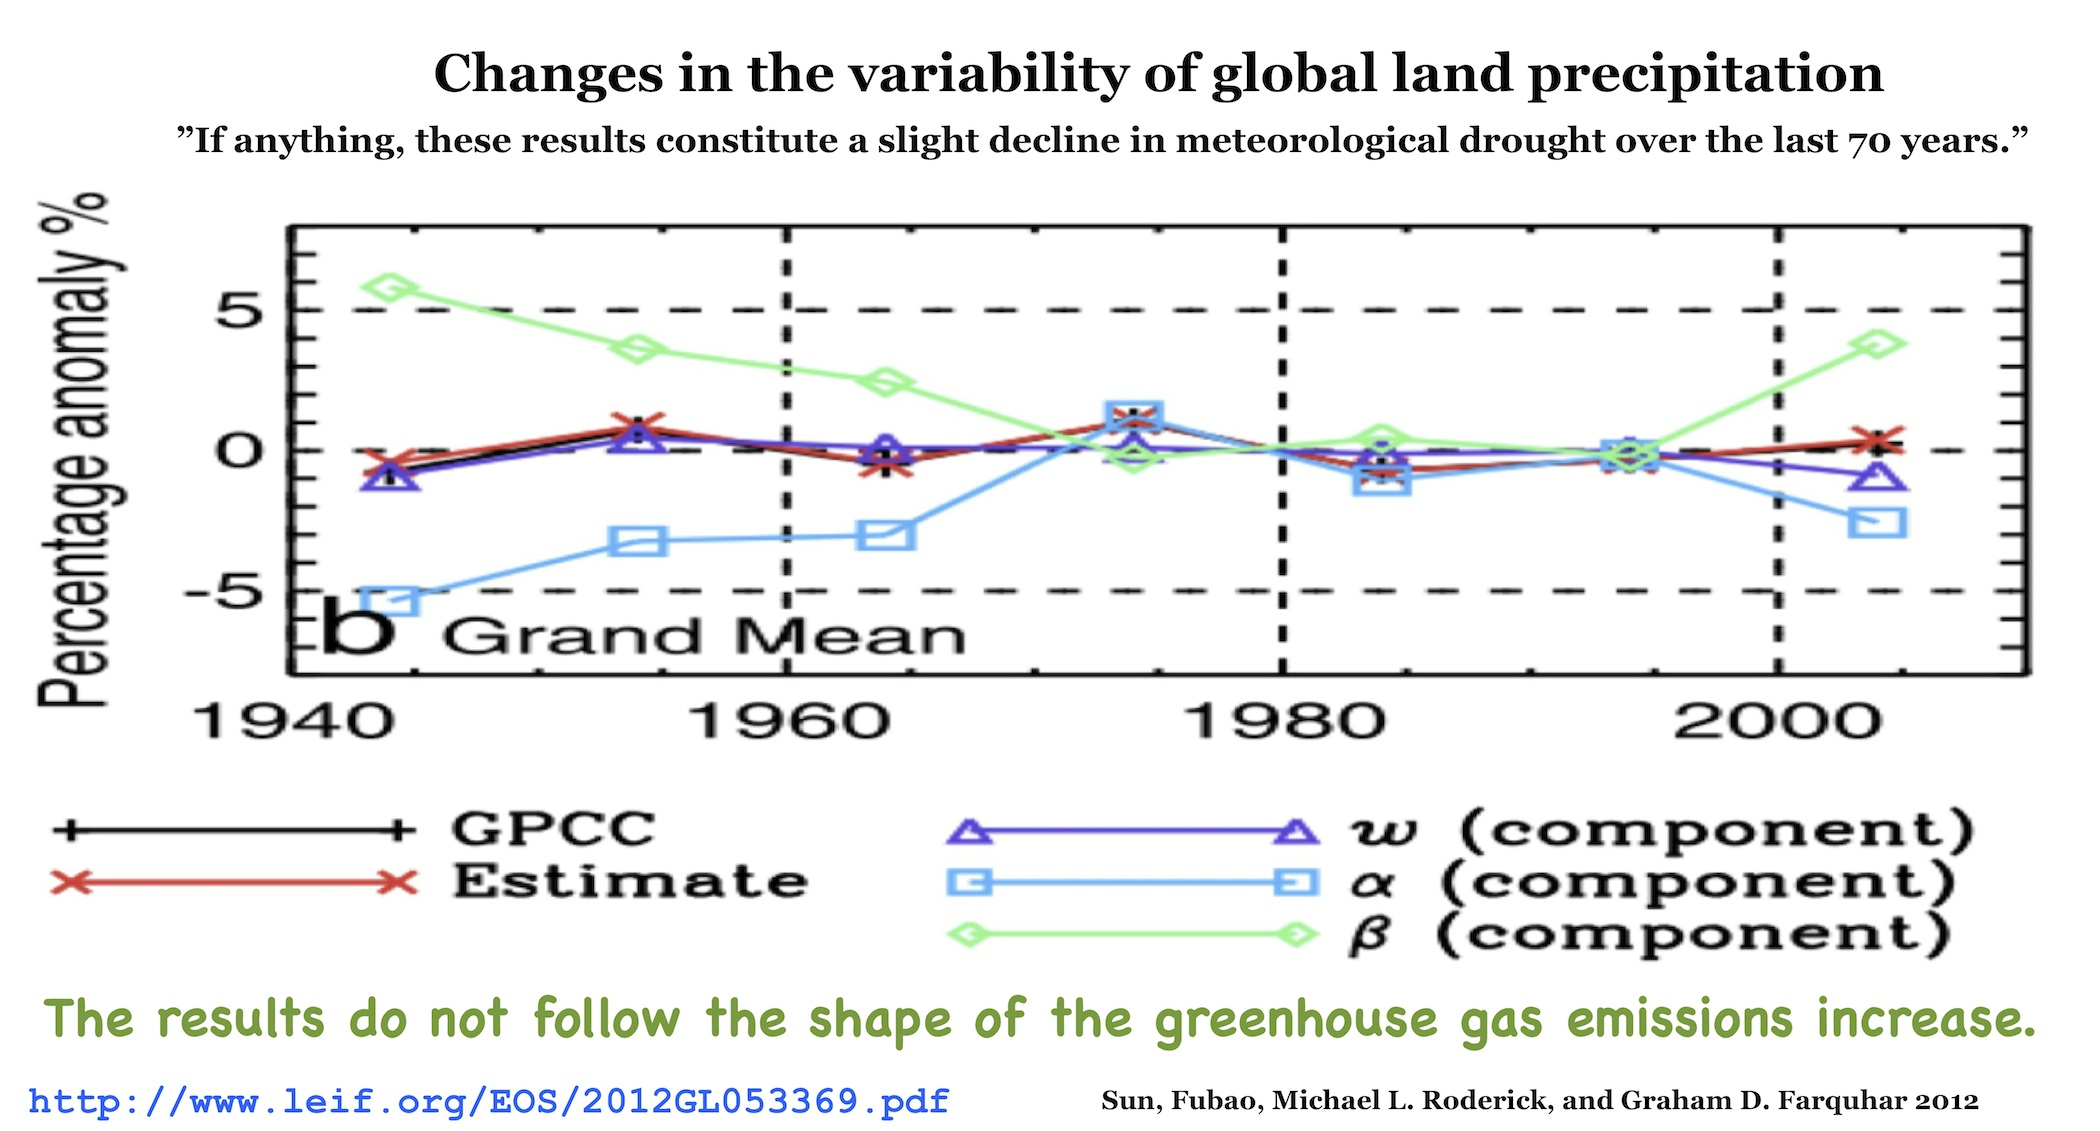 Top Ten Reasons Climate Change Is A Hoax Global Scam Displaying 18gt Images For Dry Cell Battery Diagram Sun Fubao Michael L Roderick And Graham D Farquhar 2012 Changes In The Variability Of Land Precipitation Geophysical Research Letters H T